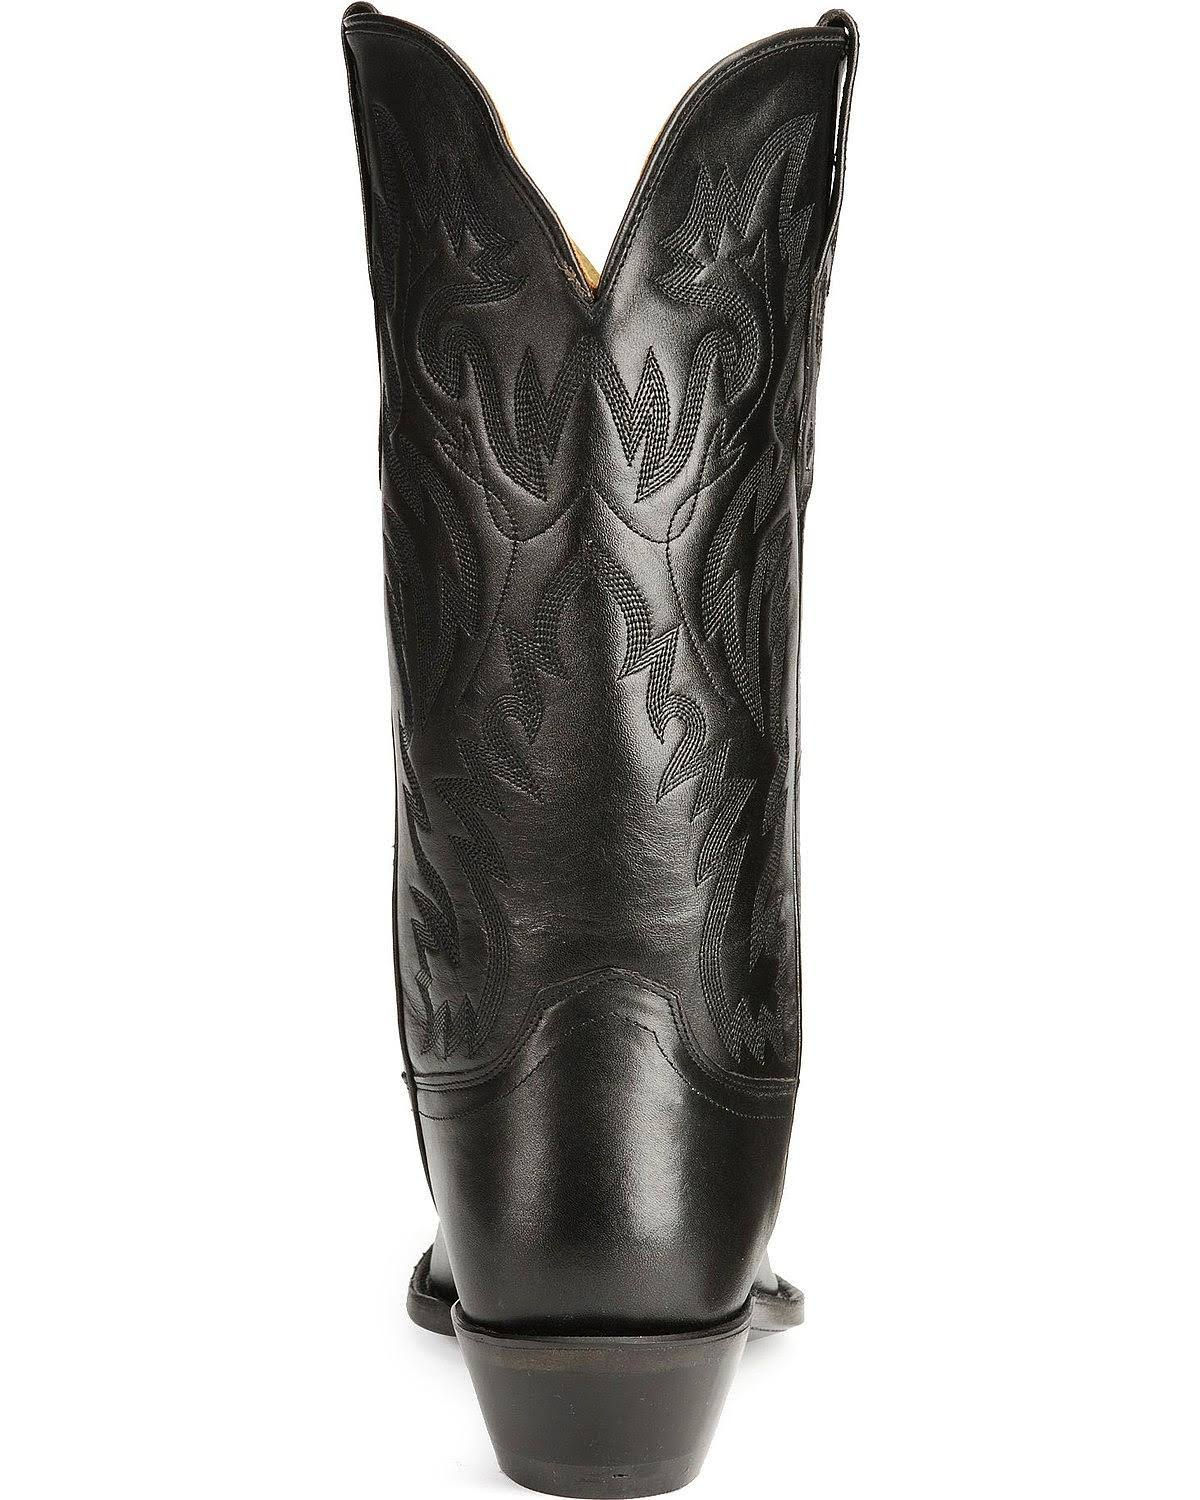 West Mens Mf1510 nera pelle Old in Boots Snip cuciture Cowboy Toe XOZkPiu